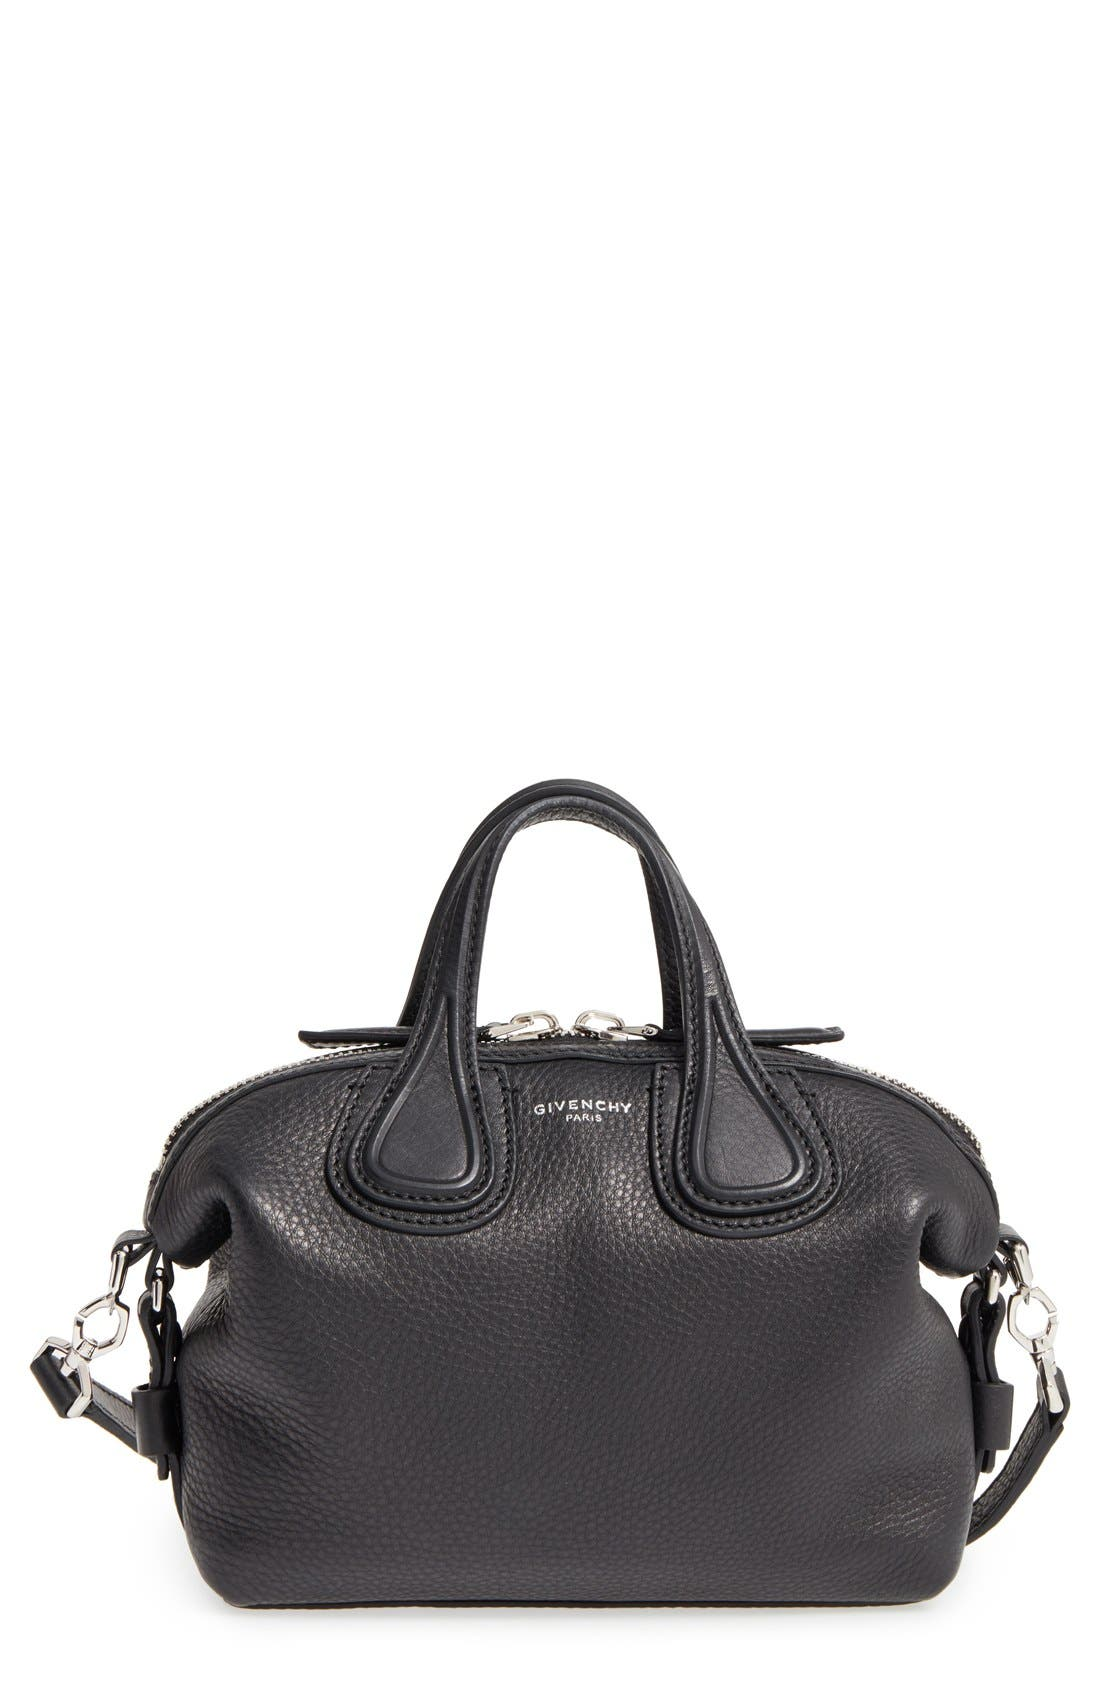 Micro Nightingale Leather Satchel,                             Main thumbnail 1, color,                             Black